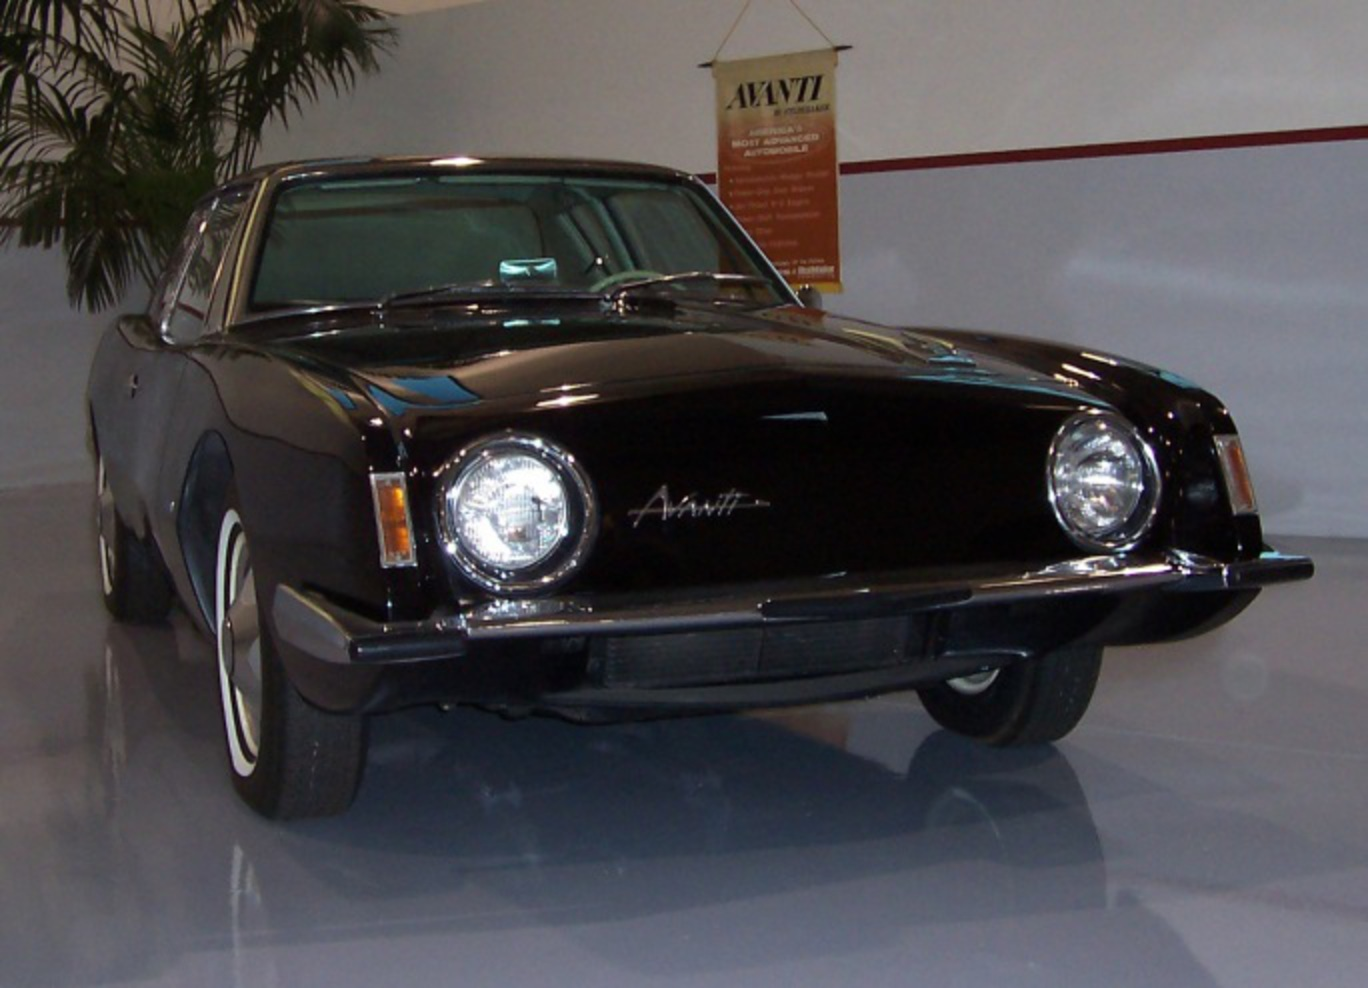 Richard Carpenter Car Collection 2005, 1963 Studebaker Avanti